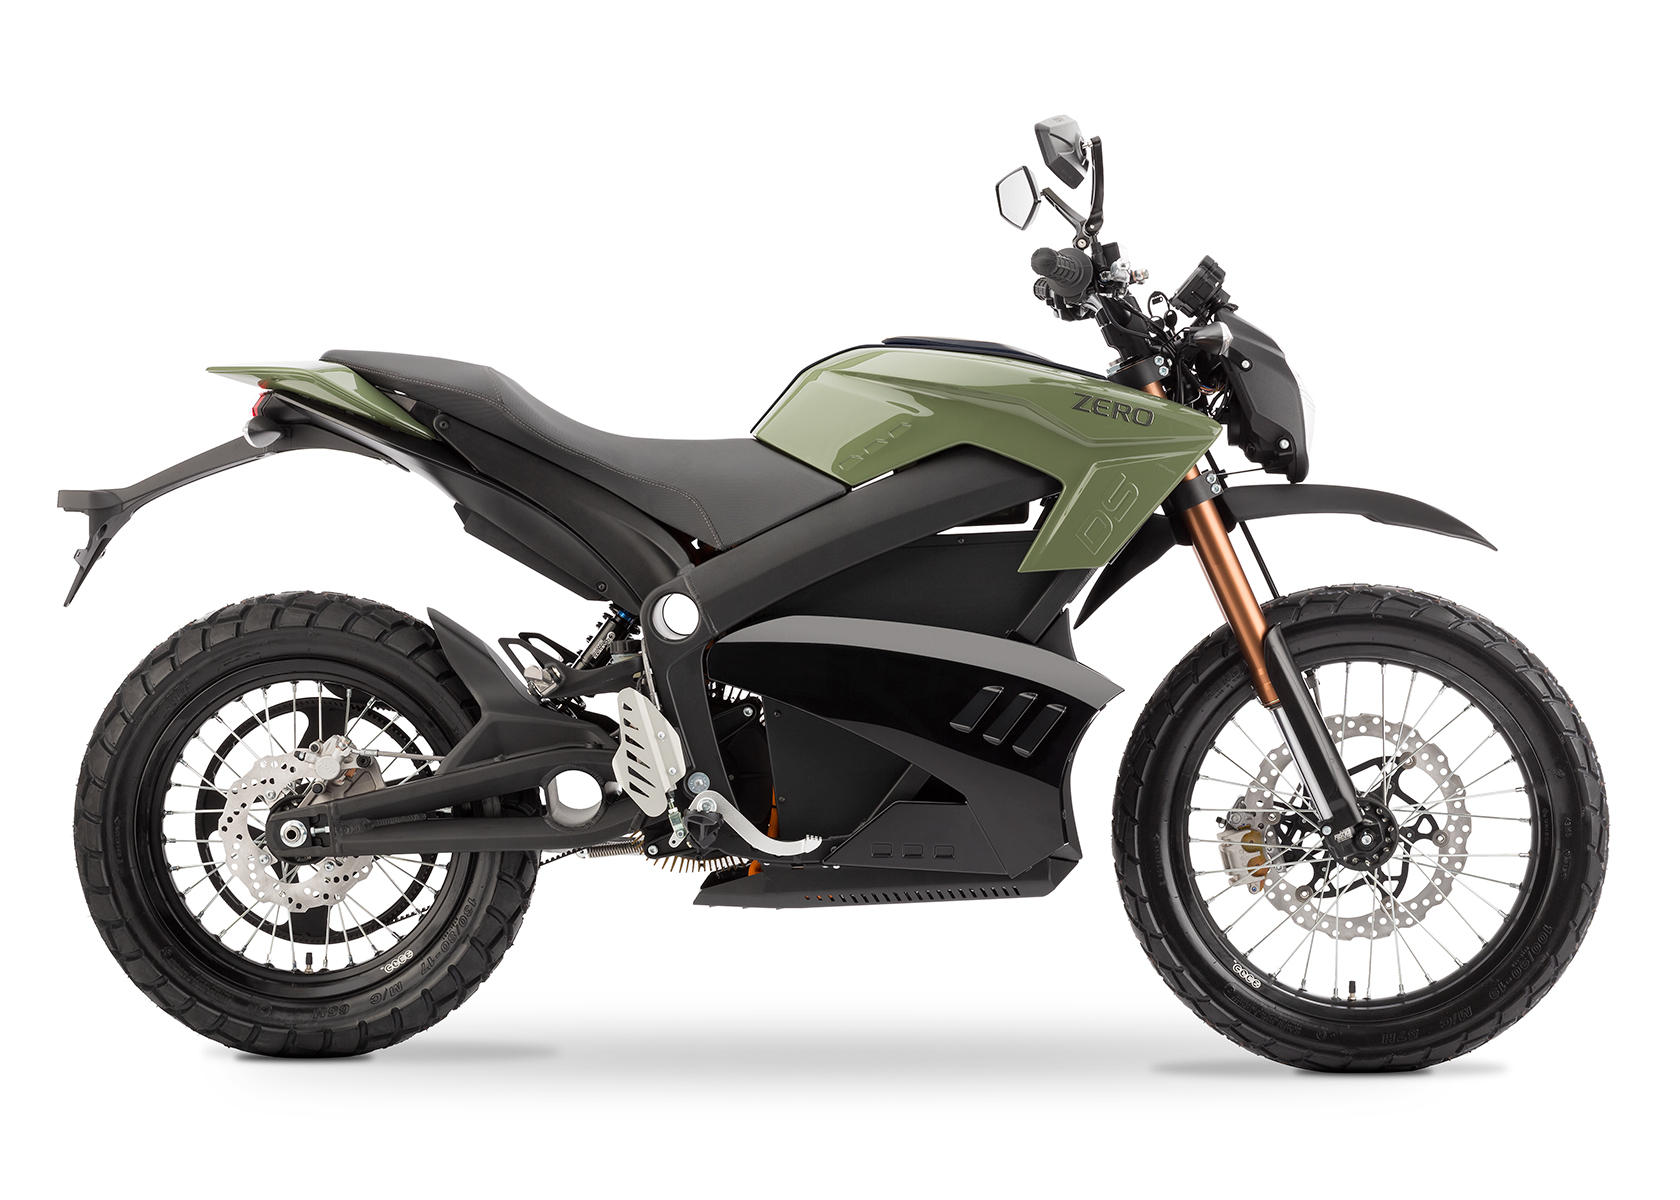 2013 Zero DS Electric Motorcycle: Green Profile Right, White Background